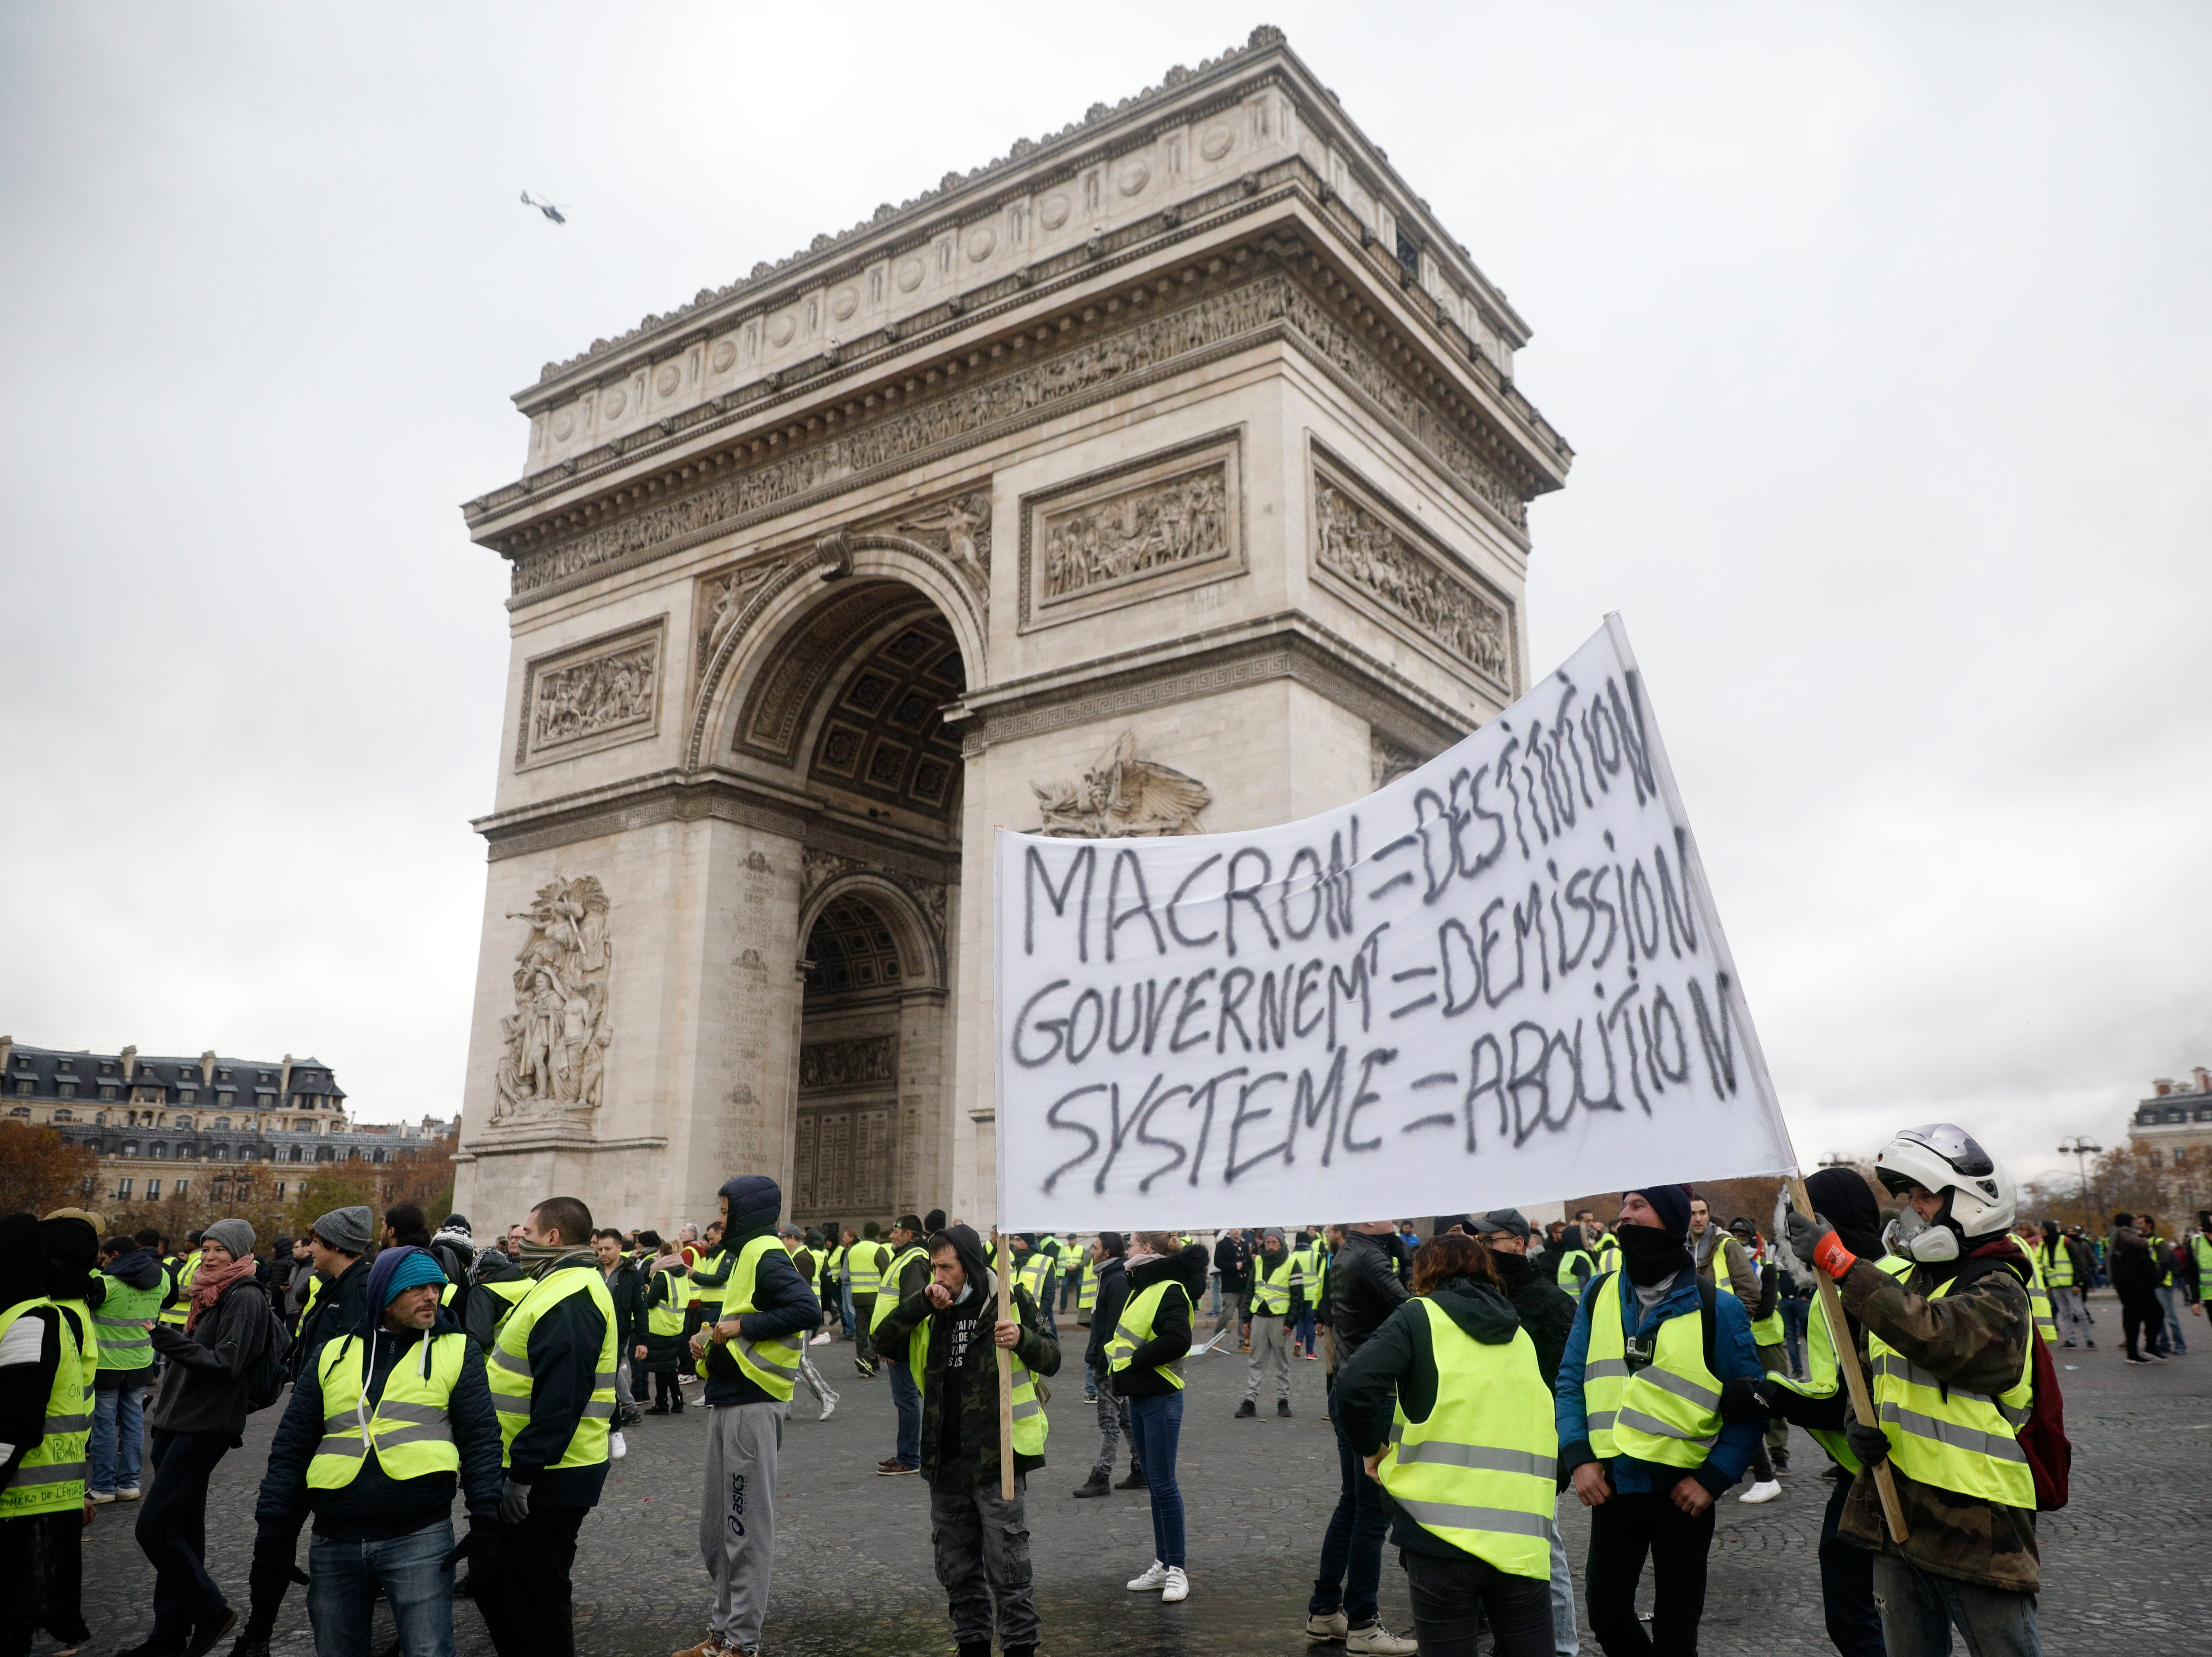 Demonstrators, called the yellow jackets, gather around the Arc de Triomphe as they protest against the fuel taxes, in Paris, France, Saturday, Nov. 24, 2018.